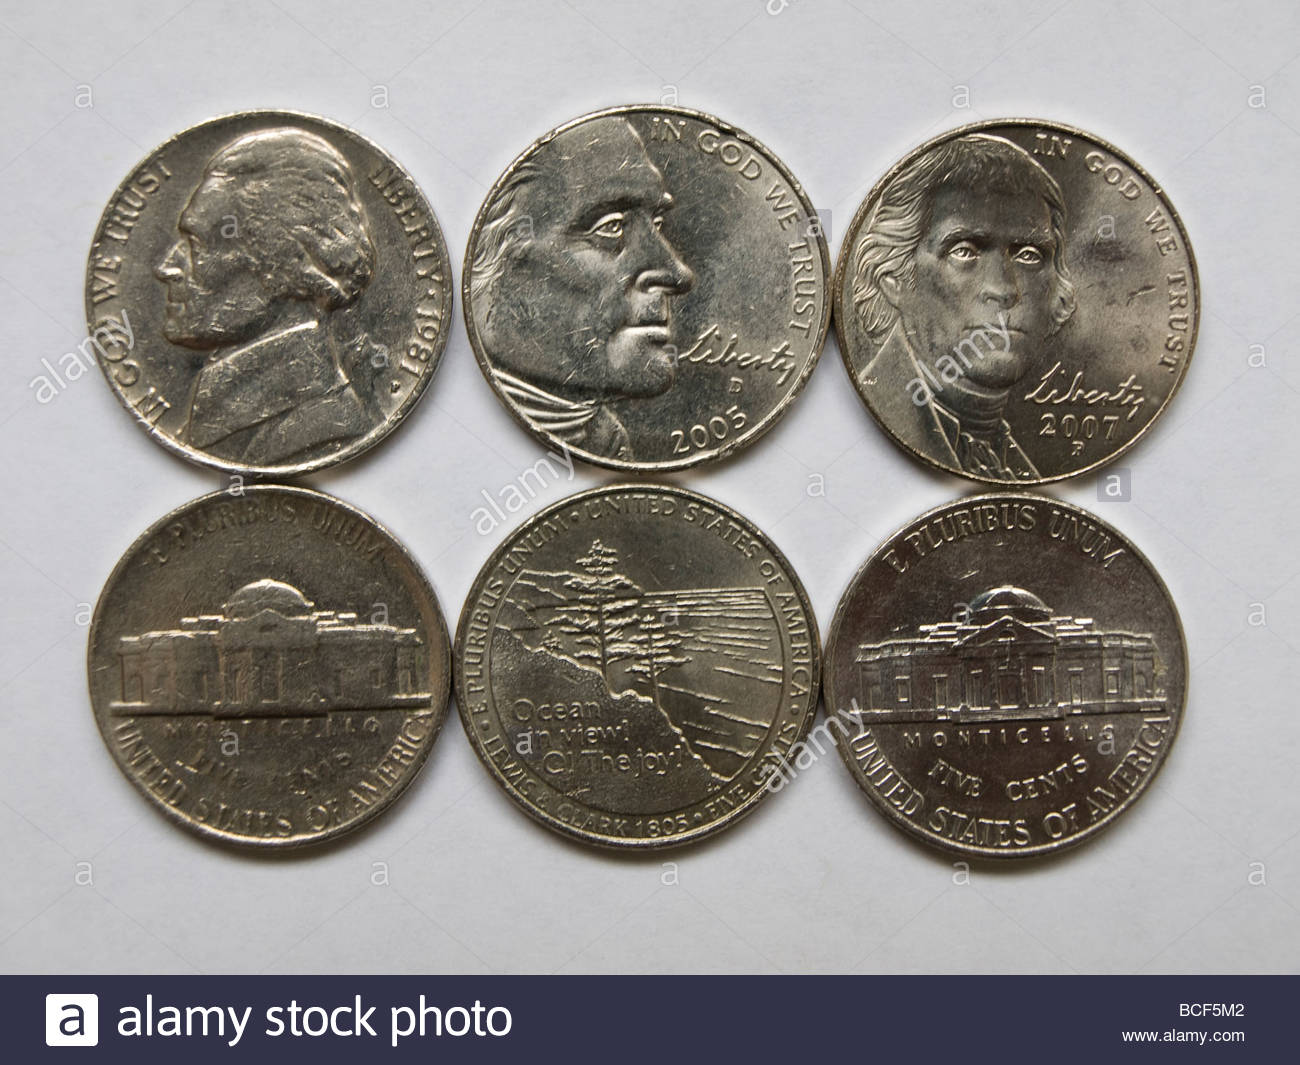 The Front And Back Of Three Different Nickel Coins Stock Photo Royalty Free Image